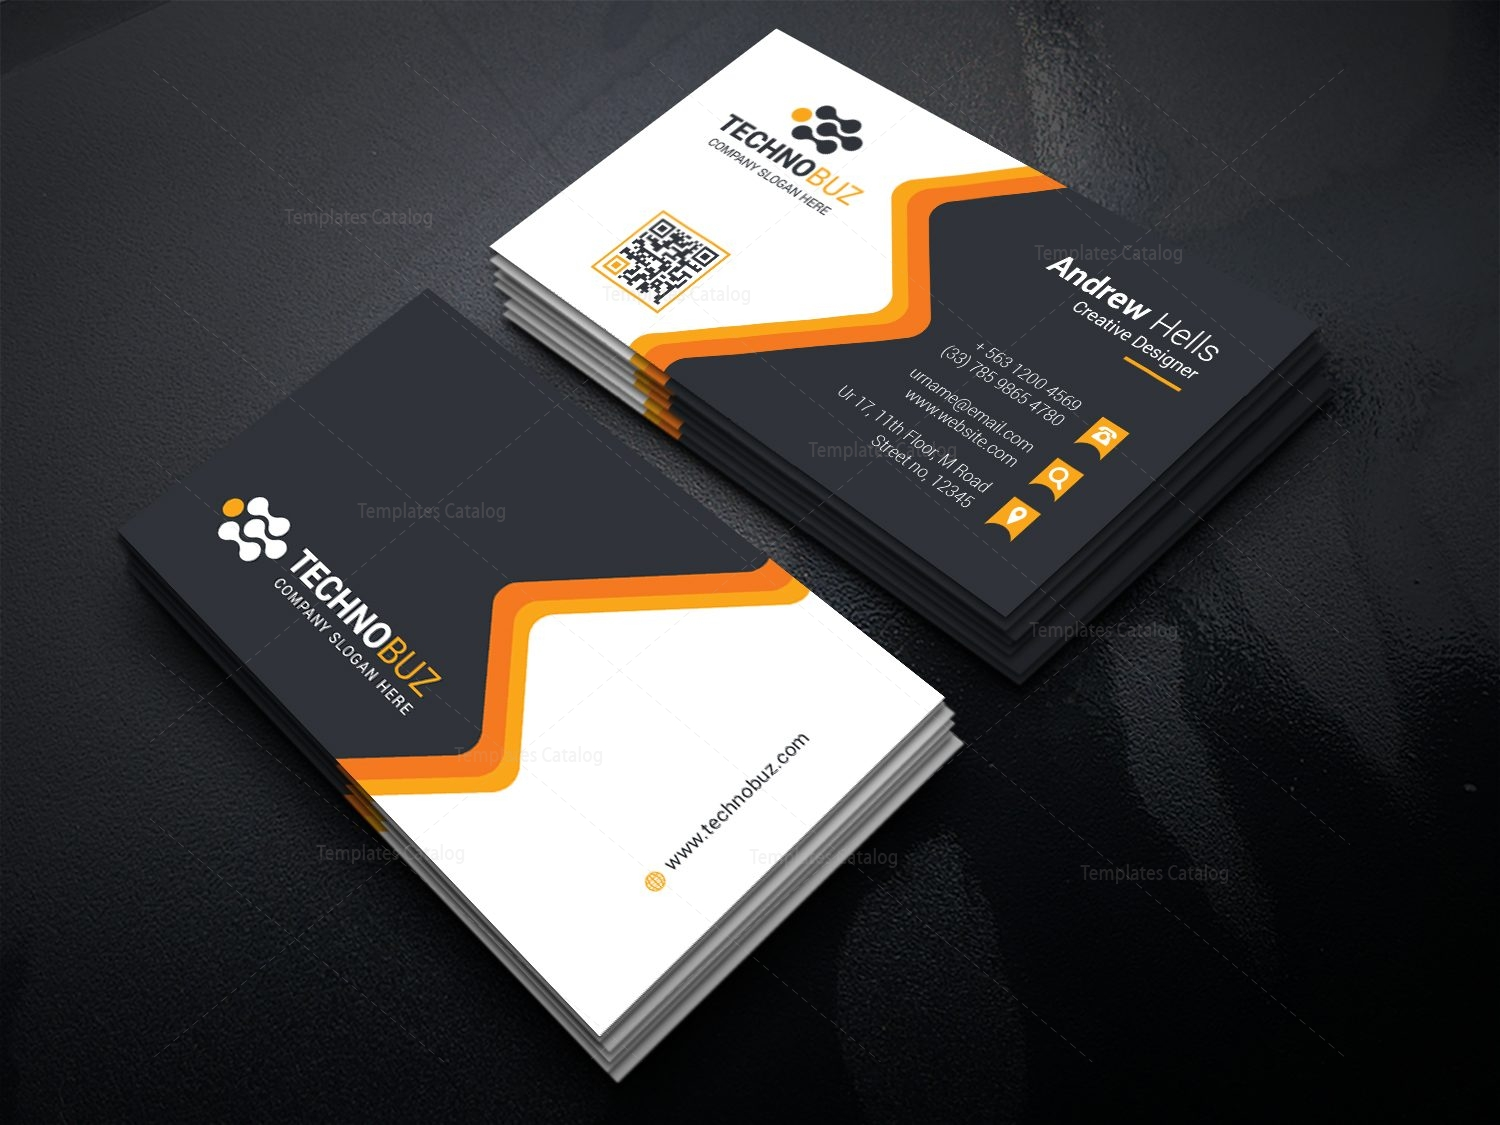 fancy premium business card template - Fancy Business Cards